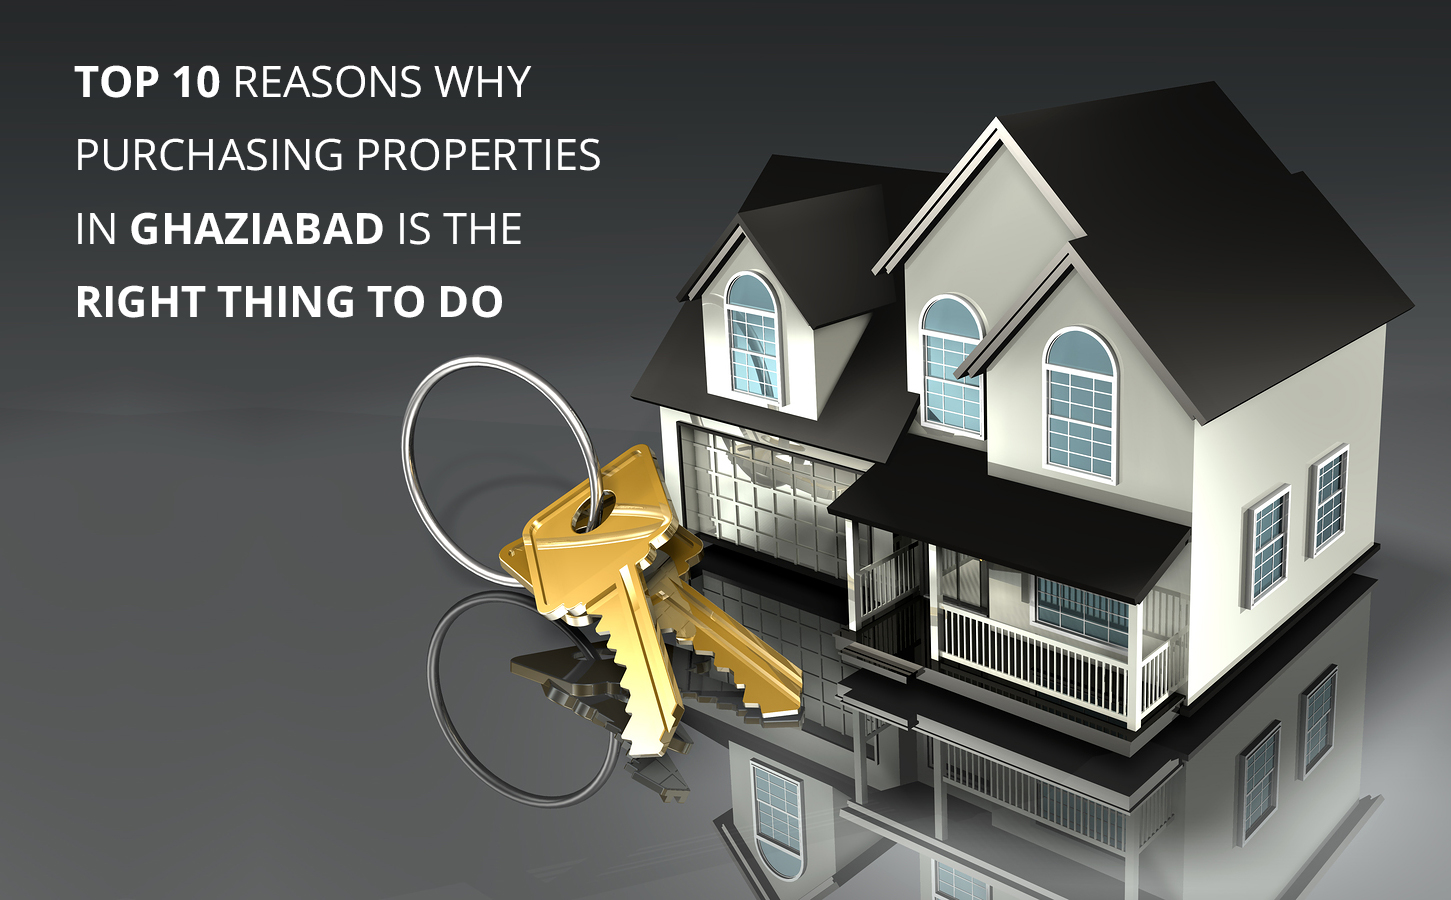 Top 10 Reasons Why Purchasing Properties in Ghaziabad is the Right Thing to do